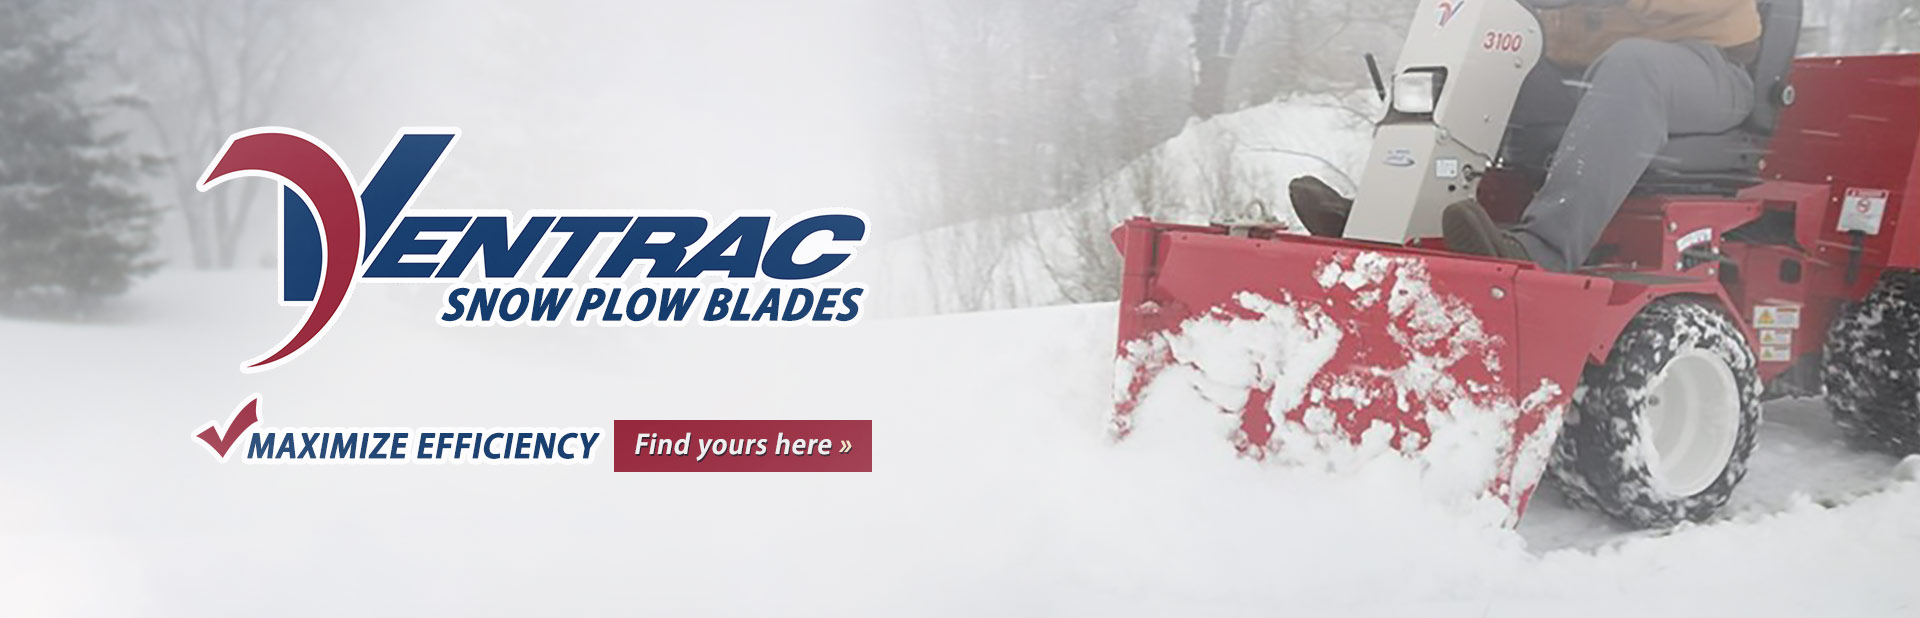 Ventrac Snow Plow Blades: Click here to view the models.